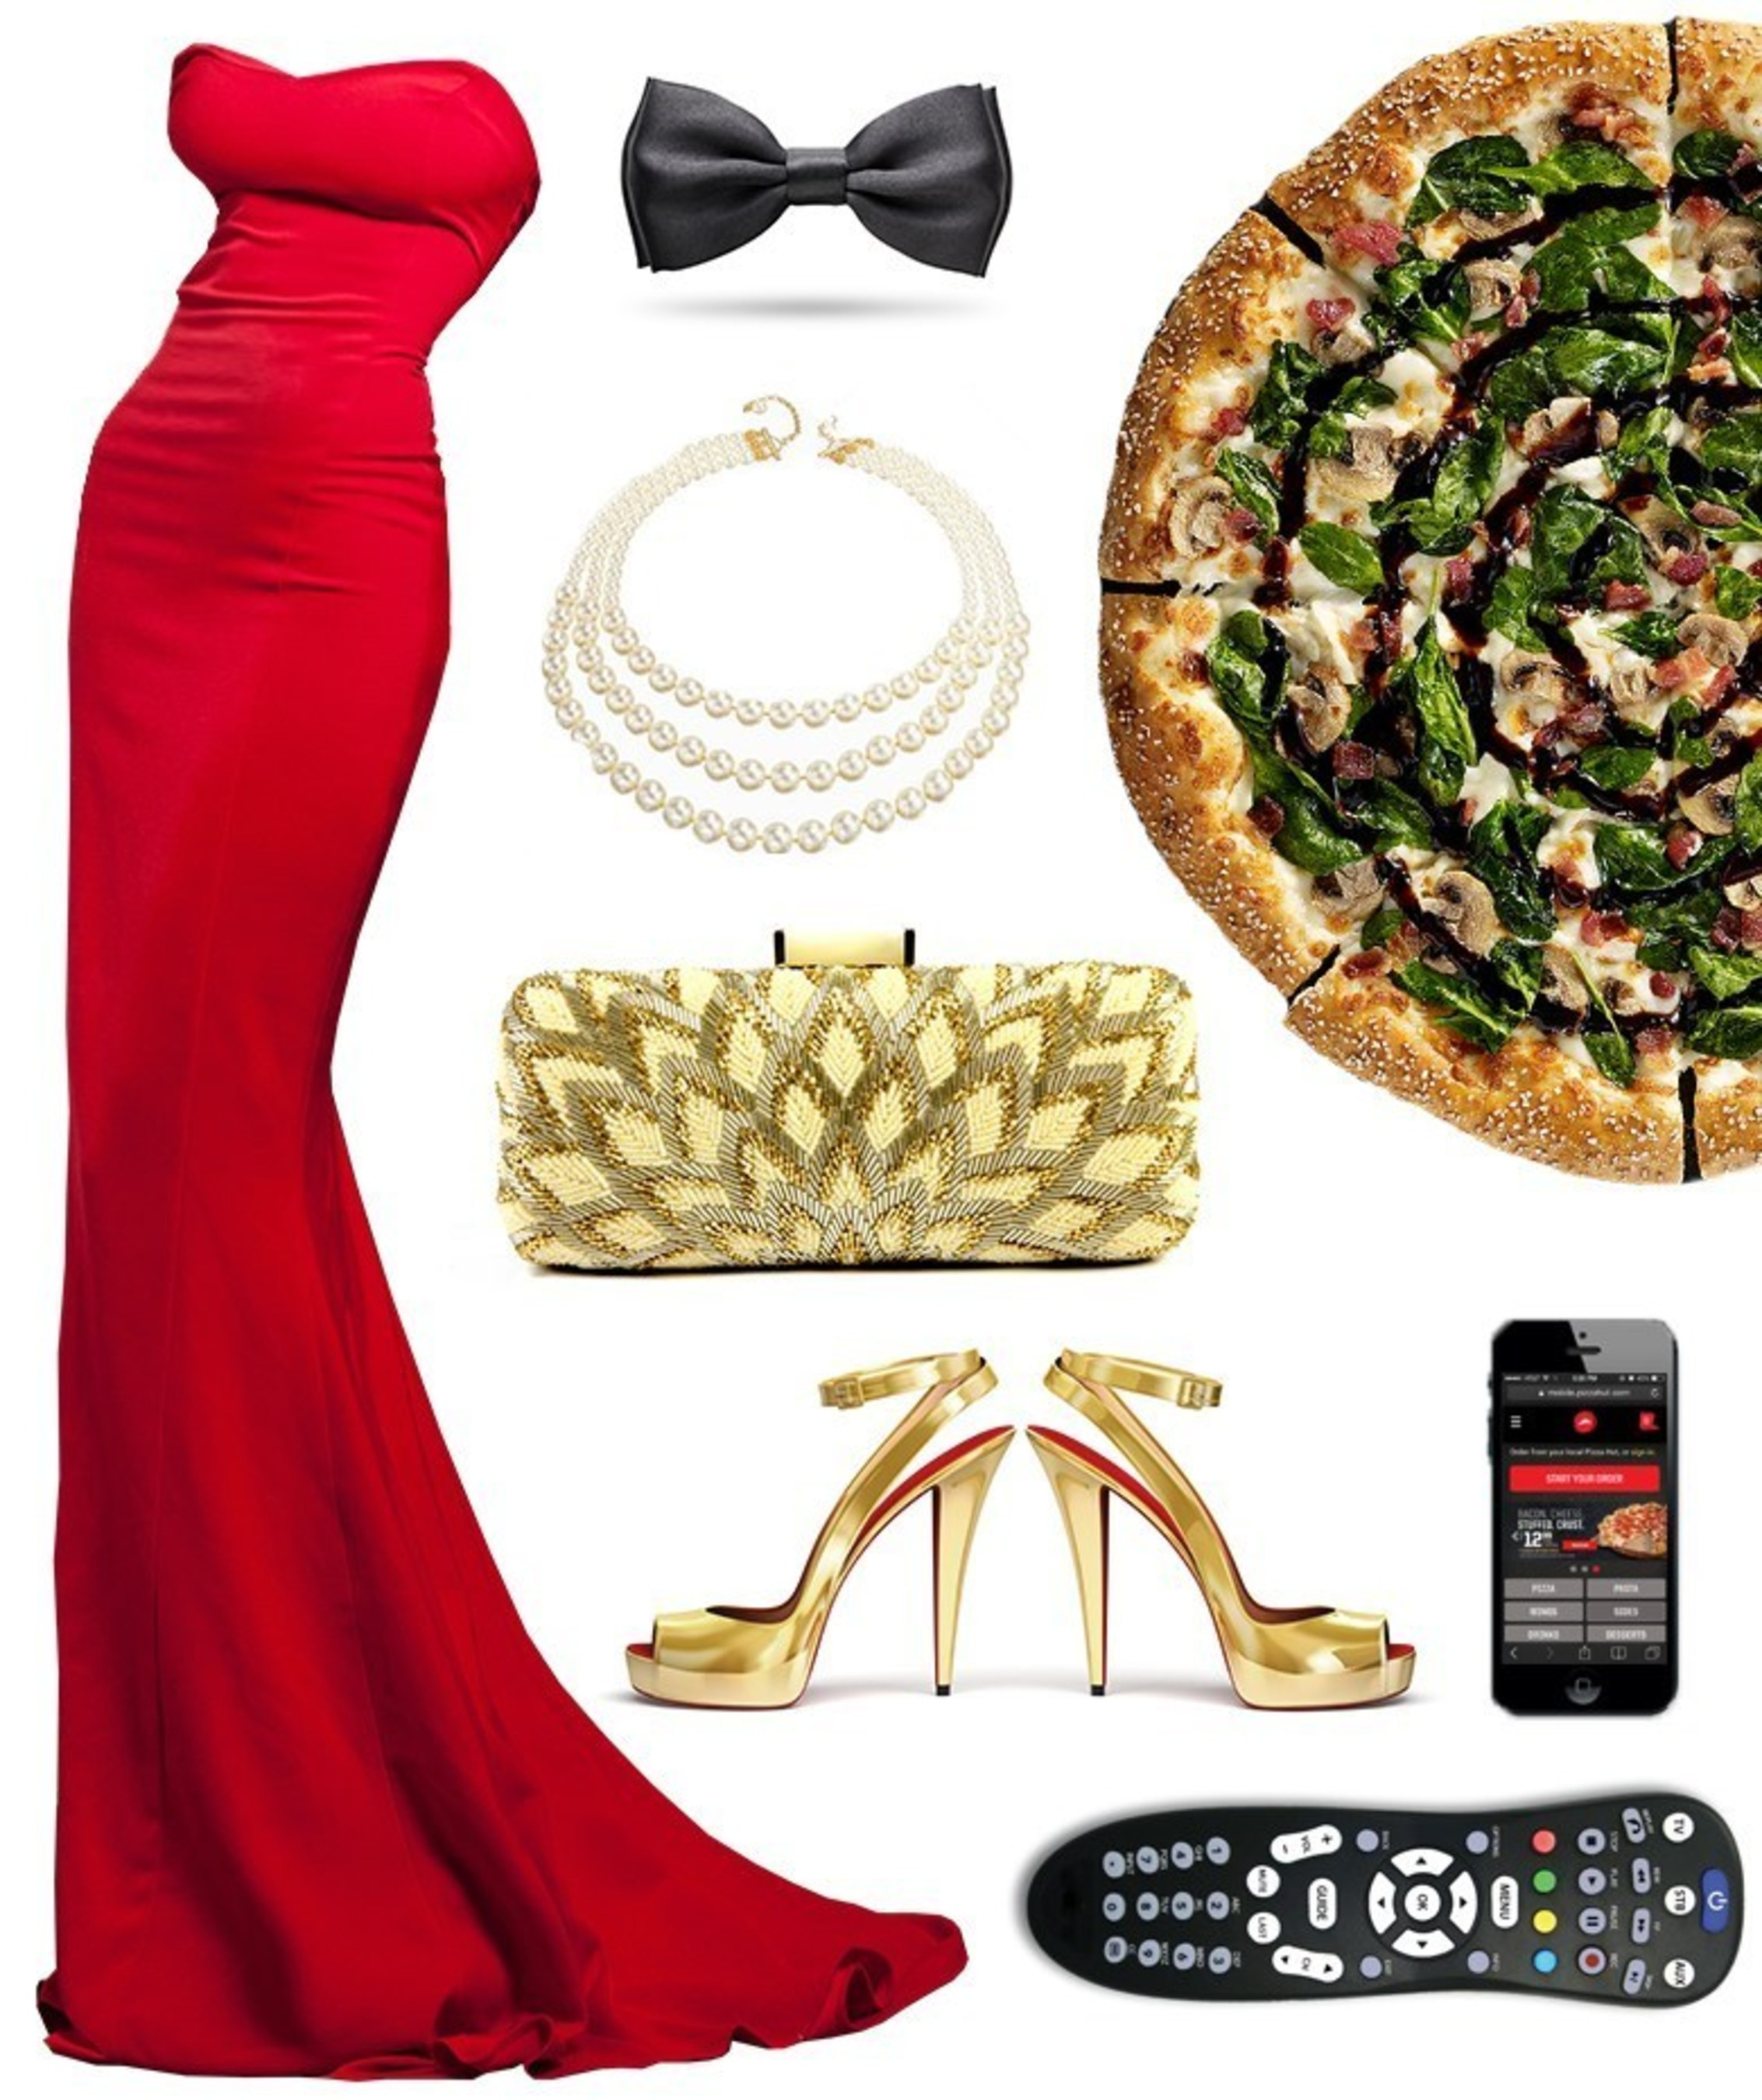 Did Somebody Say Pizza? Pizza Hut Gears Up For Hollywood's Biggest Night